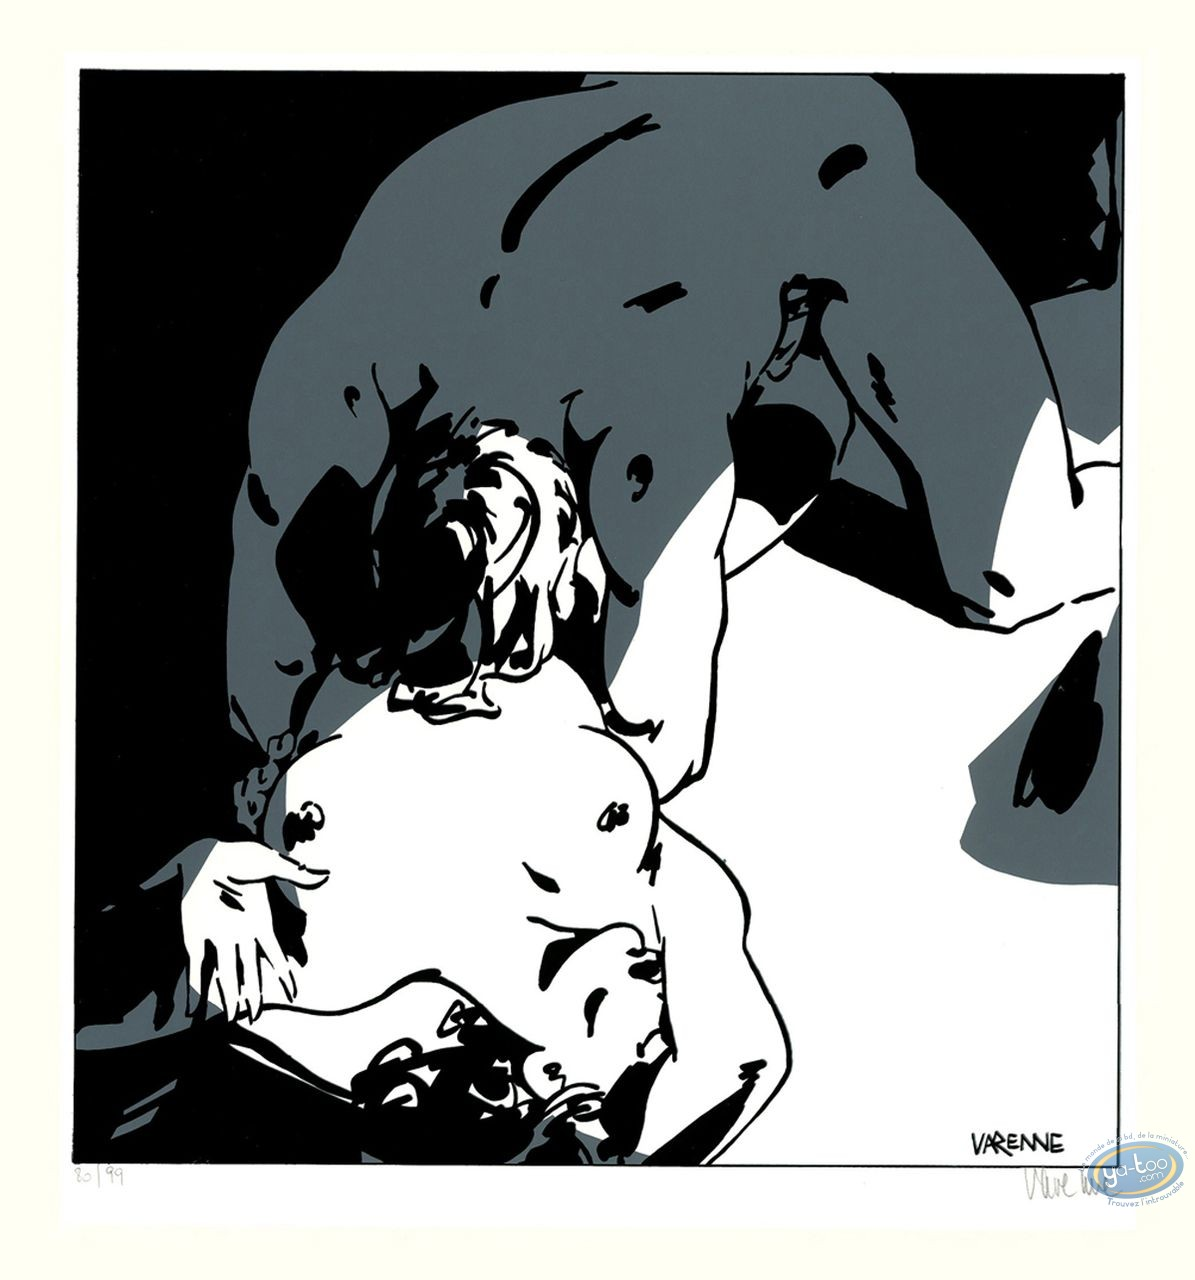 Serigraph Print, Corps à Corps : Body to body 19